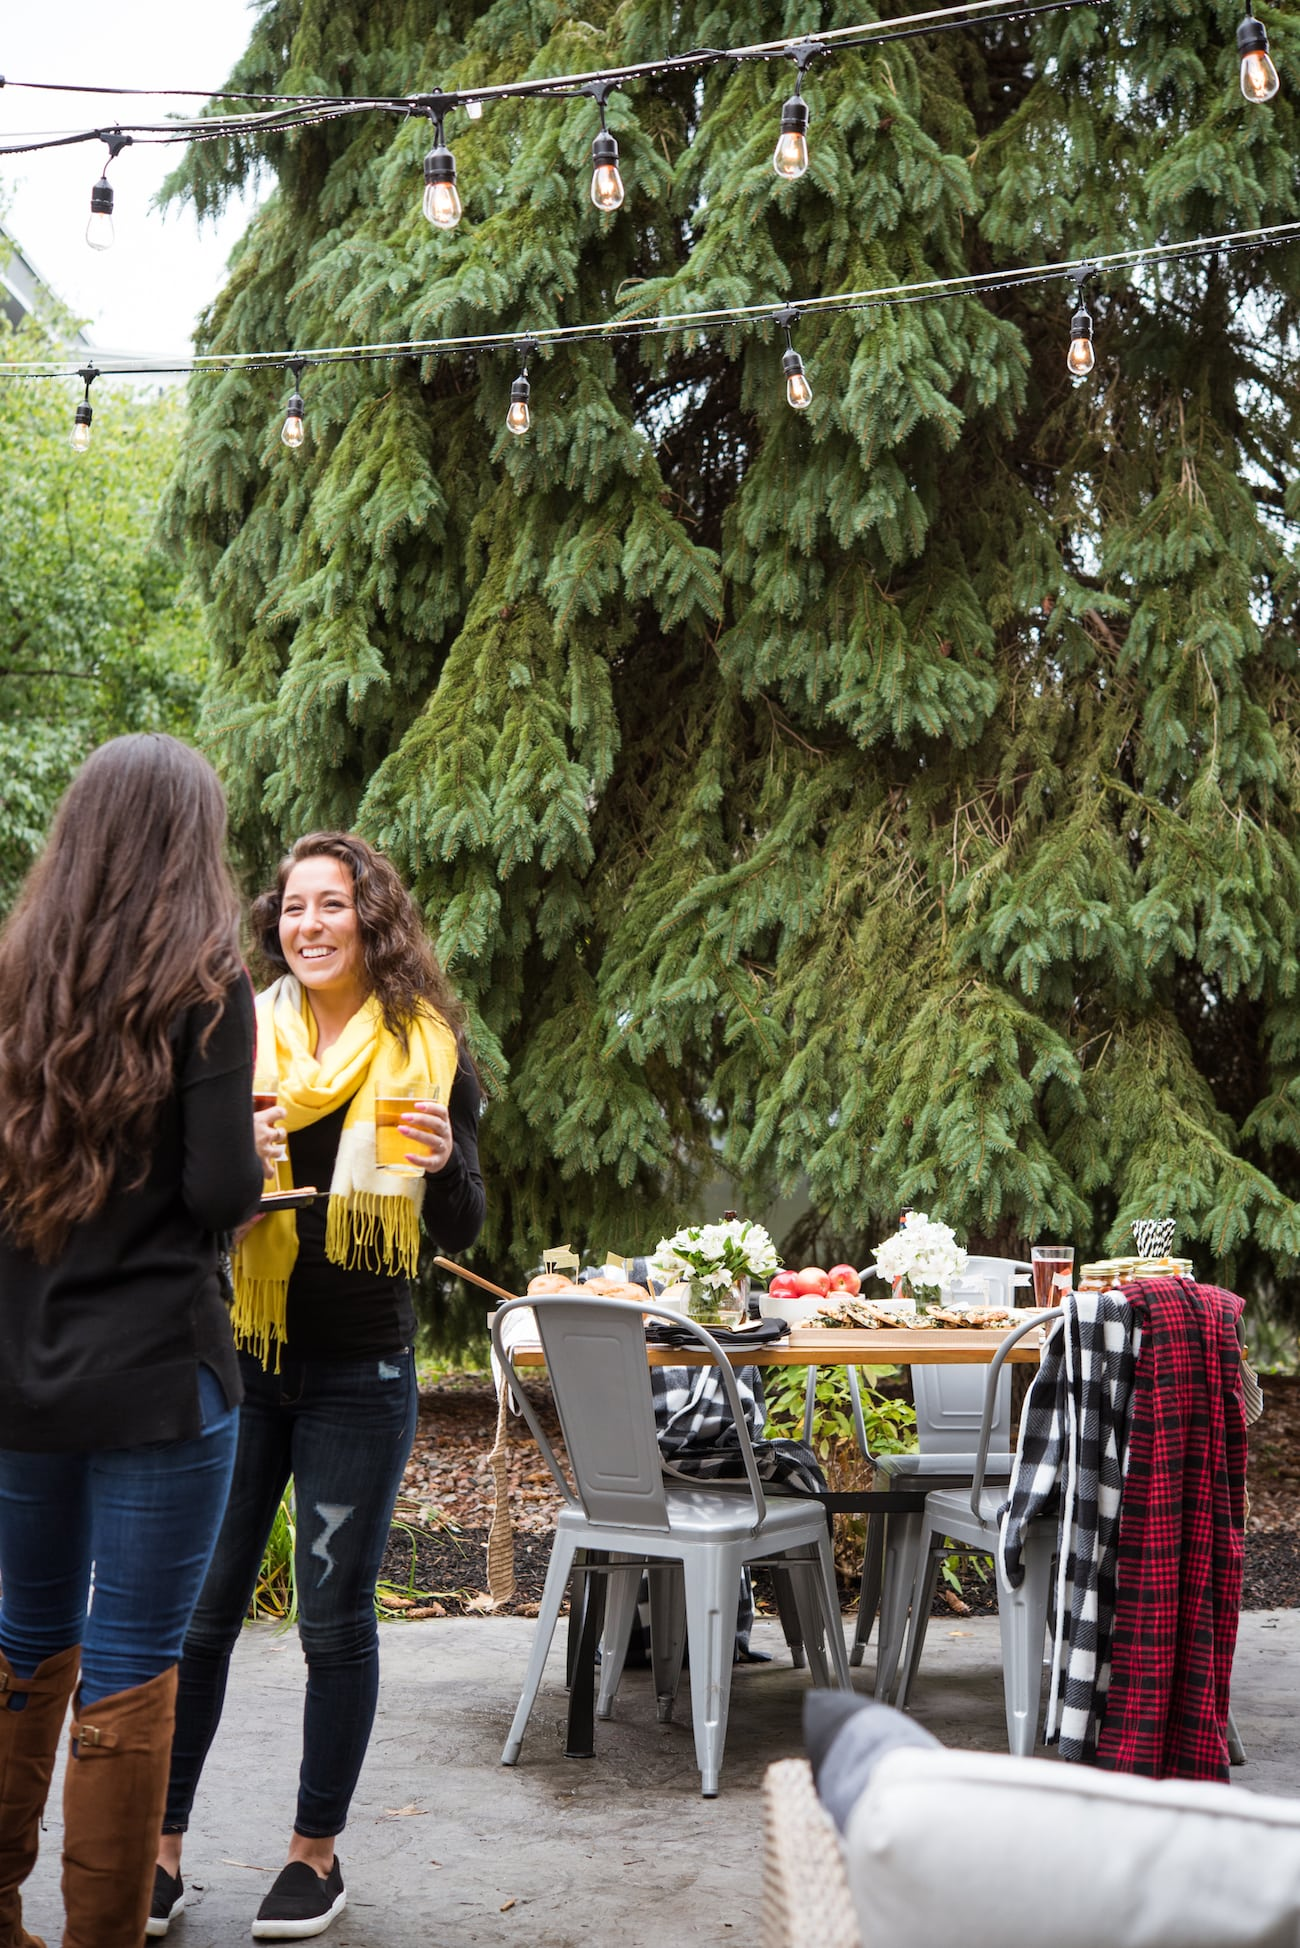 A Festive Fall Tailgate Party from Entertaining Blog @cydconverse